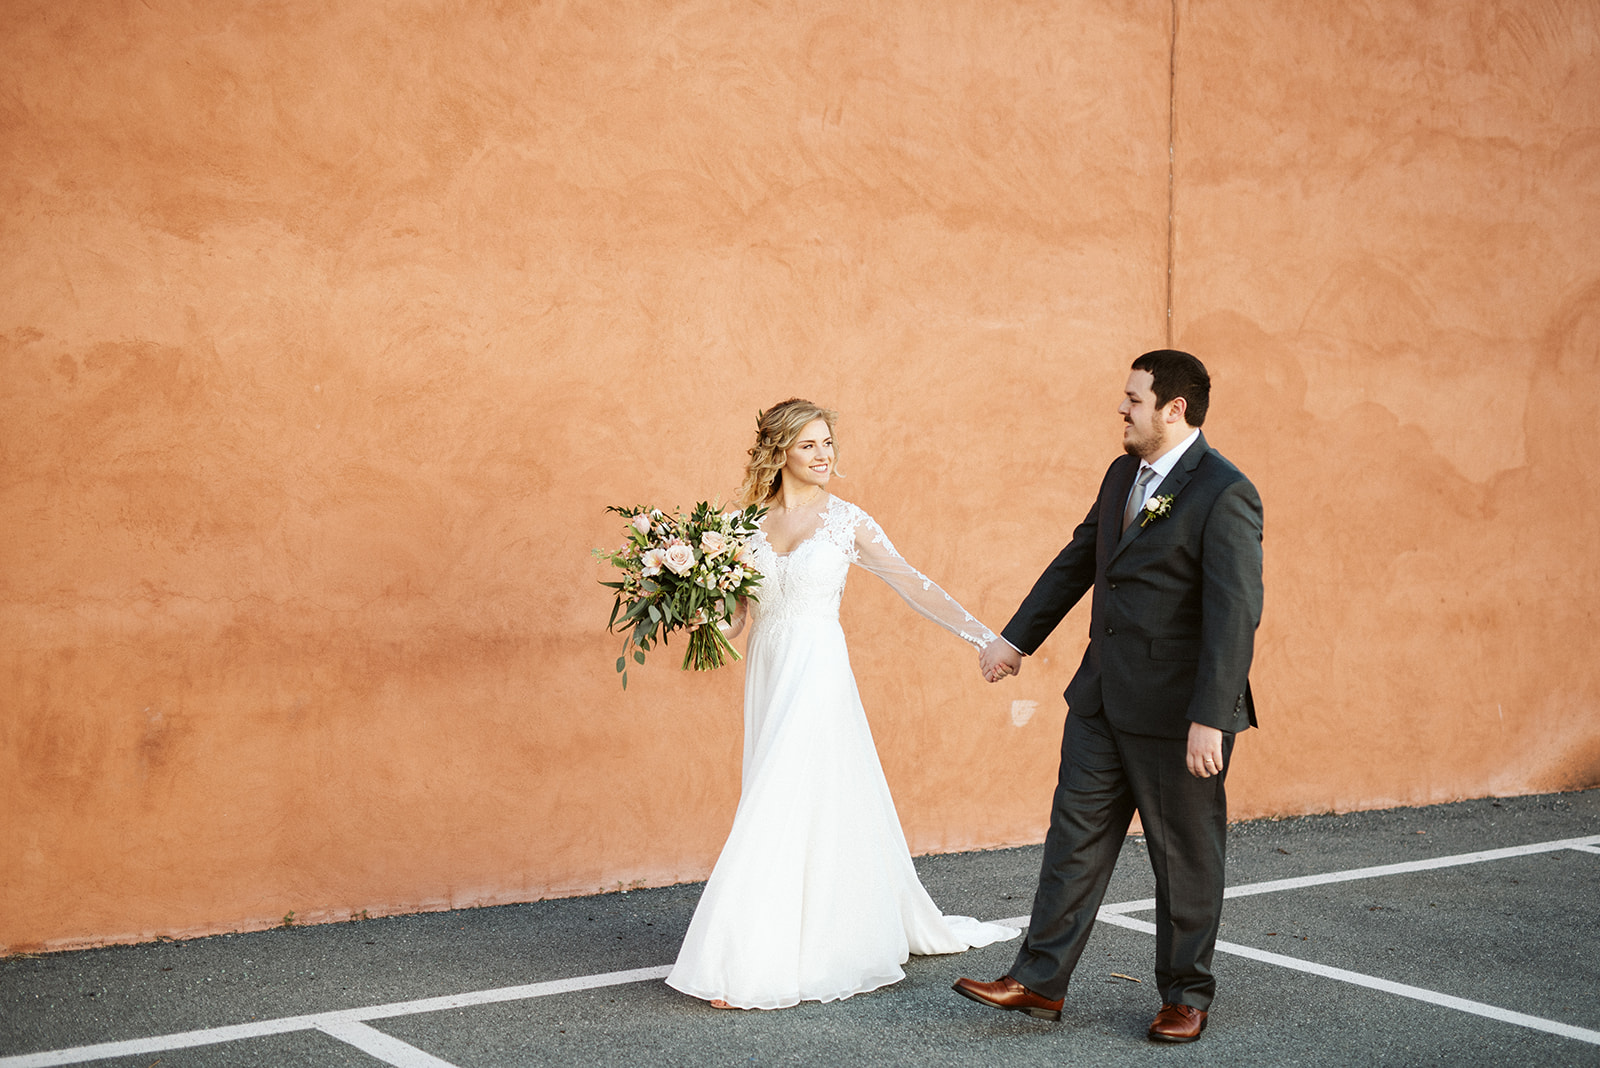 Cork Factory Hotel, Lancaster, PA Wedding - Bride and Groom walking past the peach wall on the exterior of the Cork Factory Hotel property.